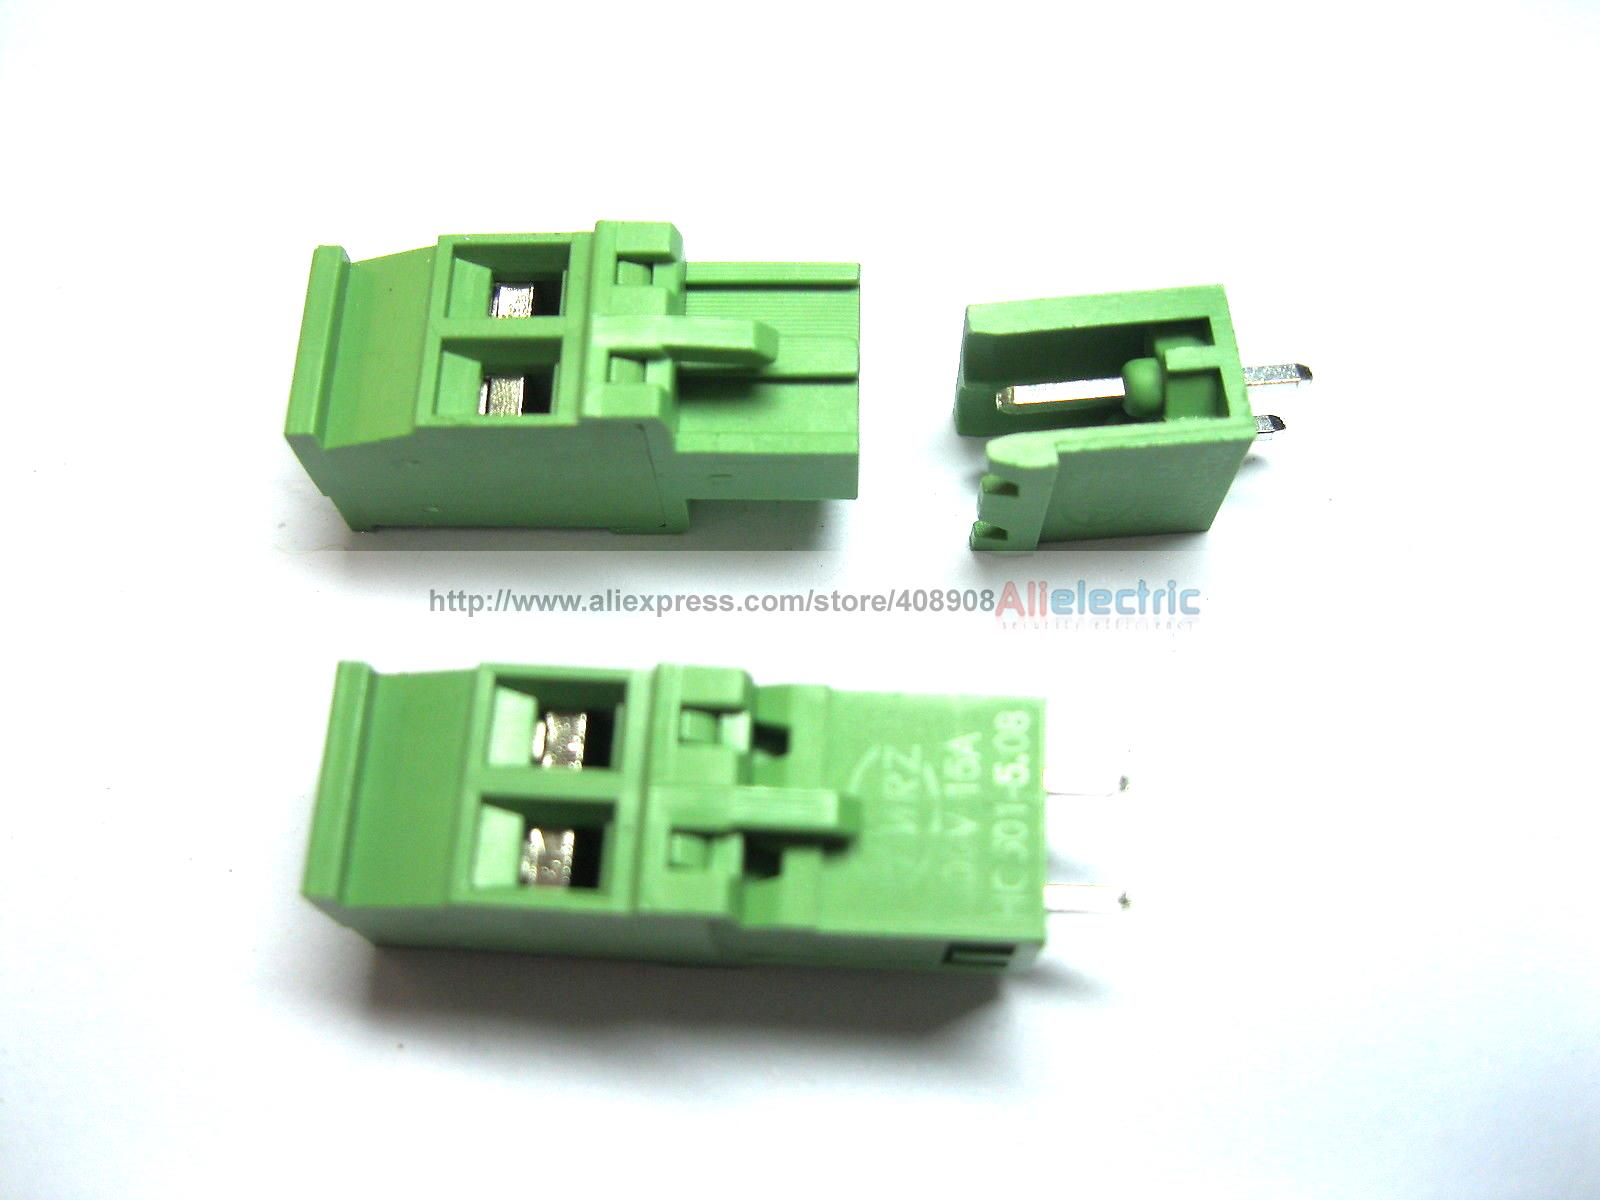 100 Pcs 5.08A 5.08mm Straight 2 Pin Screw Terminal Block Connector Pluggable Type 50 pcs 3 81mm pitch 3 pin straight screw pluggable terminal block plug connector